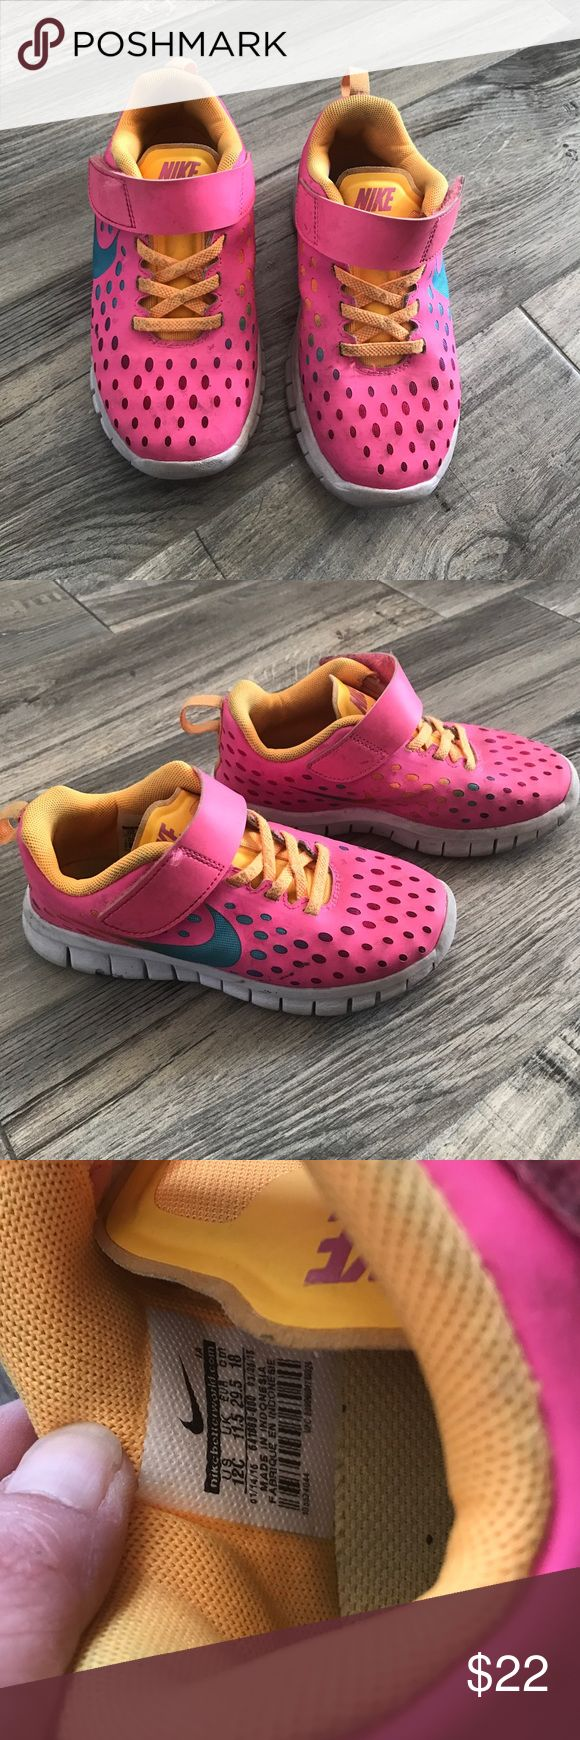 Girls Nike gym shoes Good condition size 12 Nike Shoes Sneakers